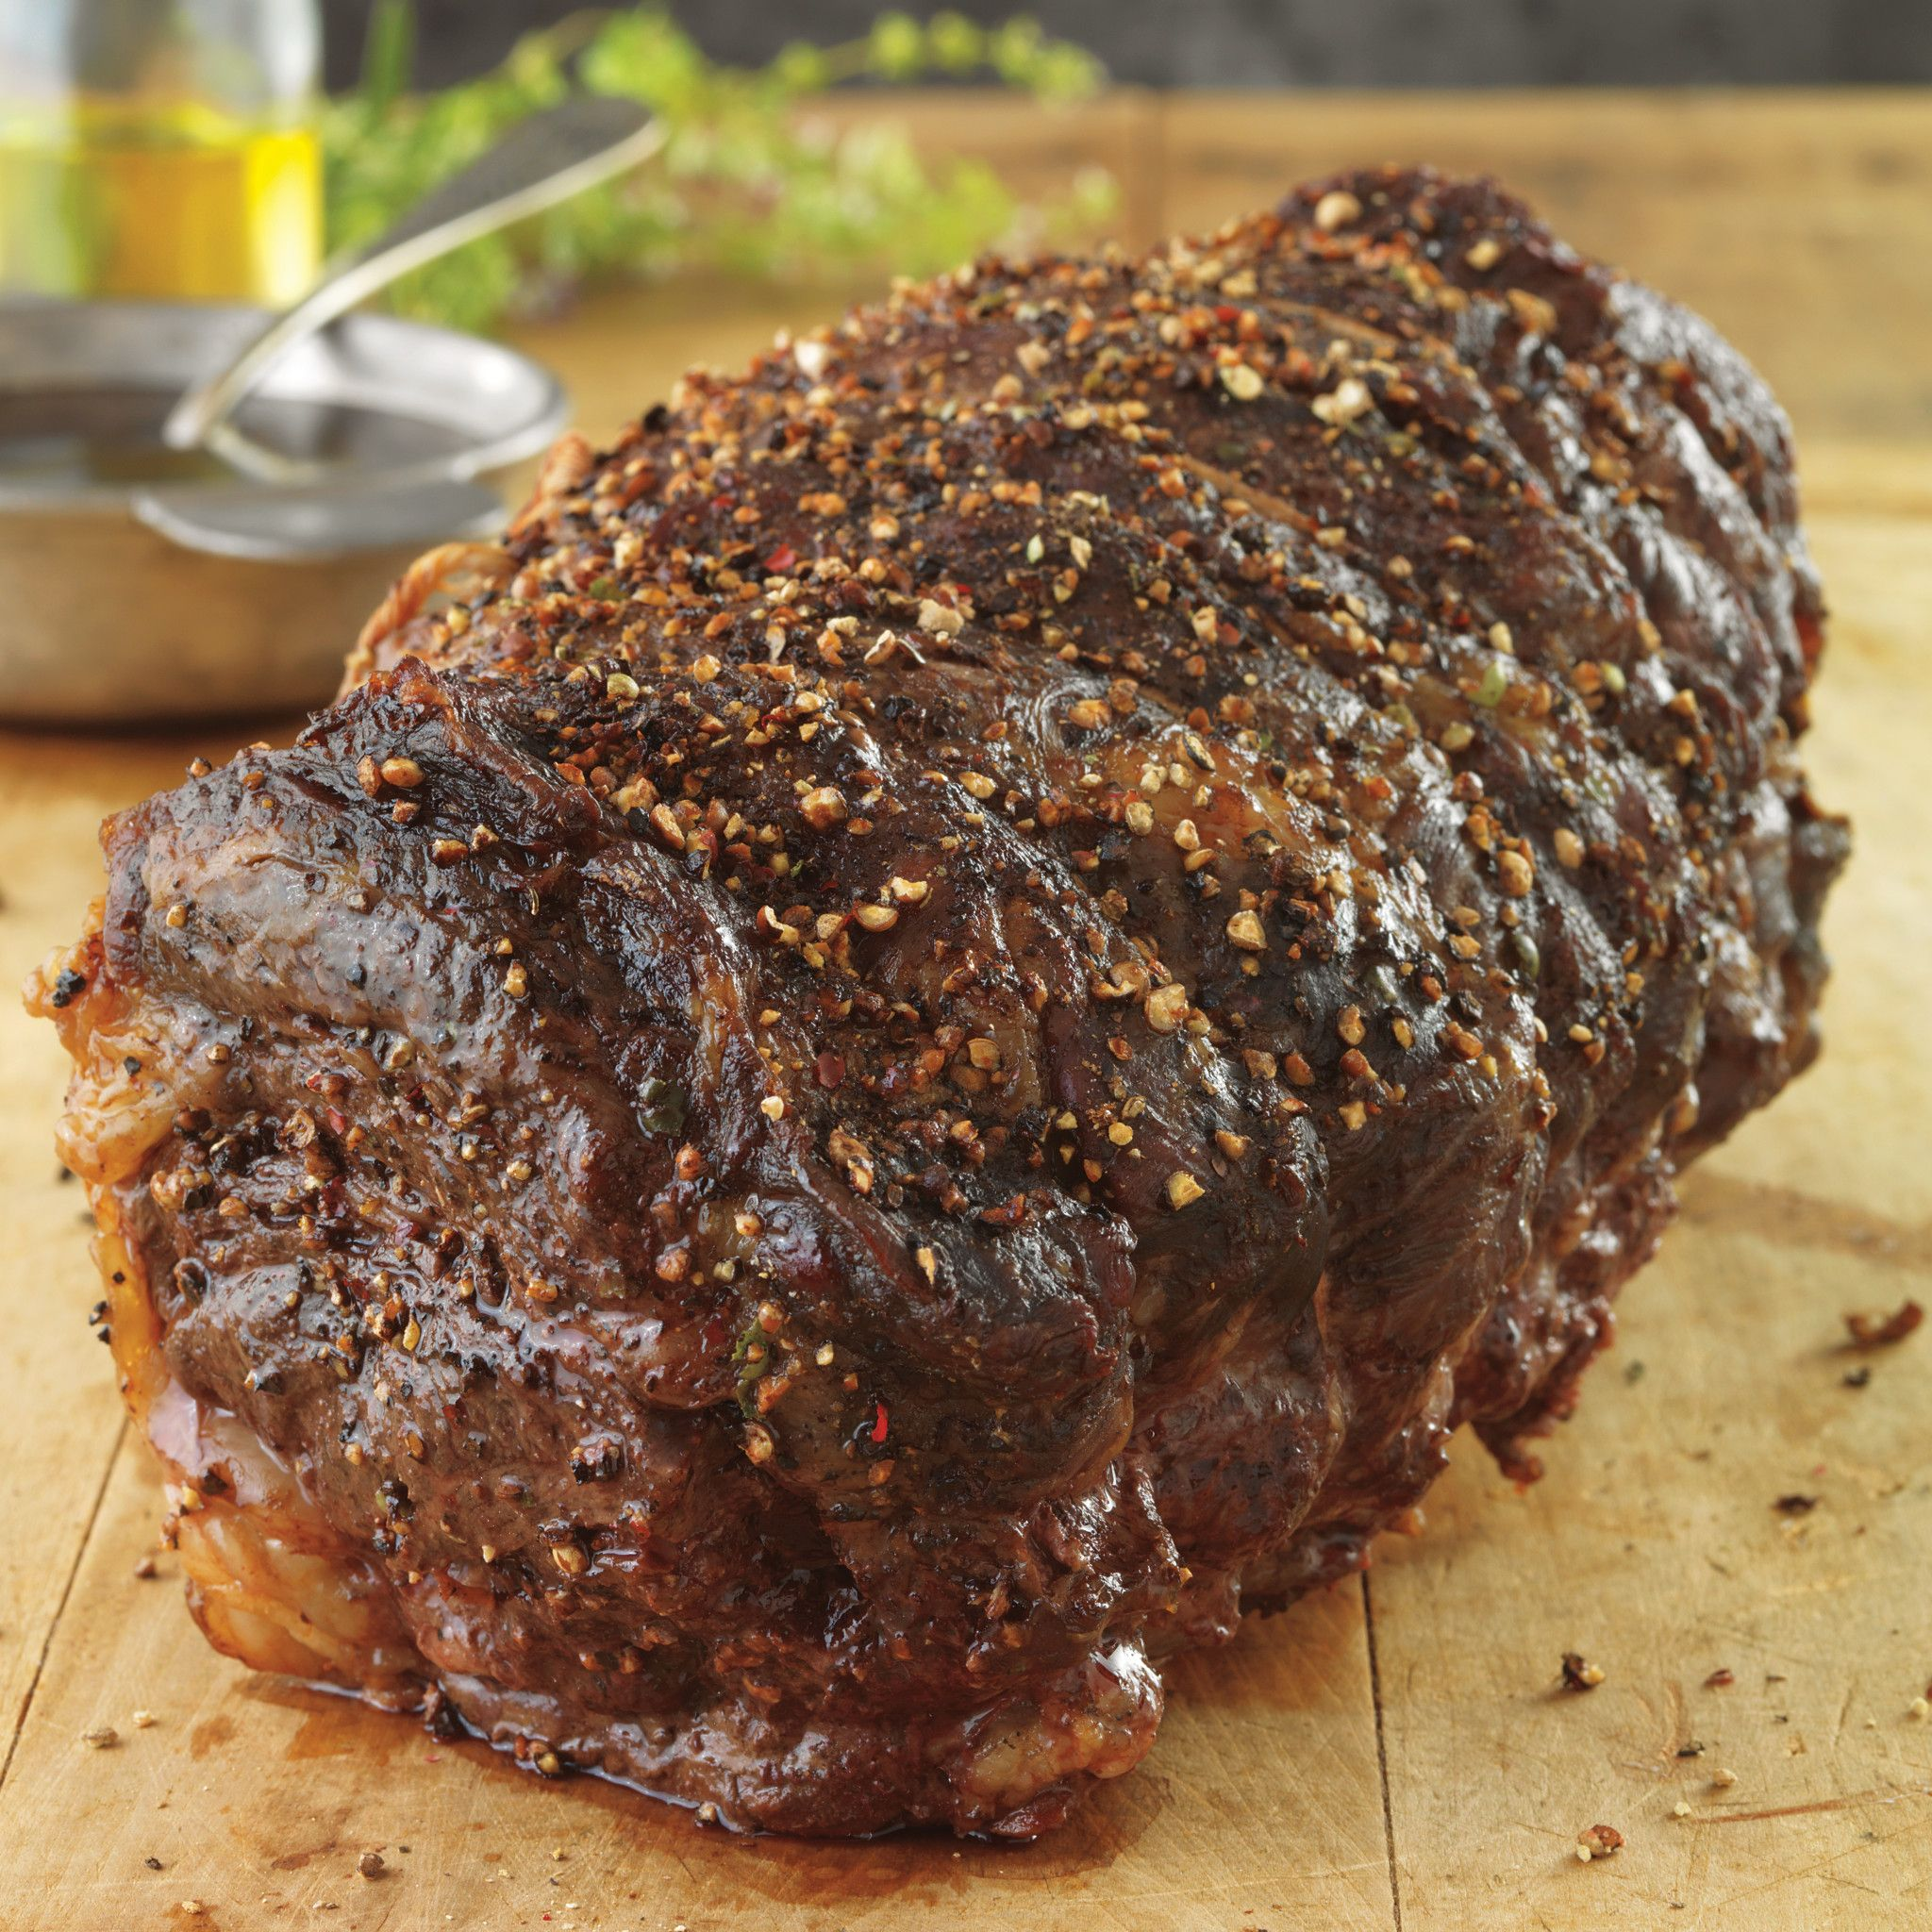 Garlic and Tri-Pepper-Crusted Beef Roast with Balsamic Sauce